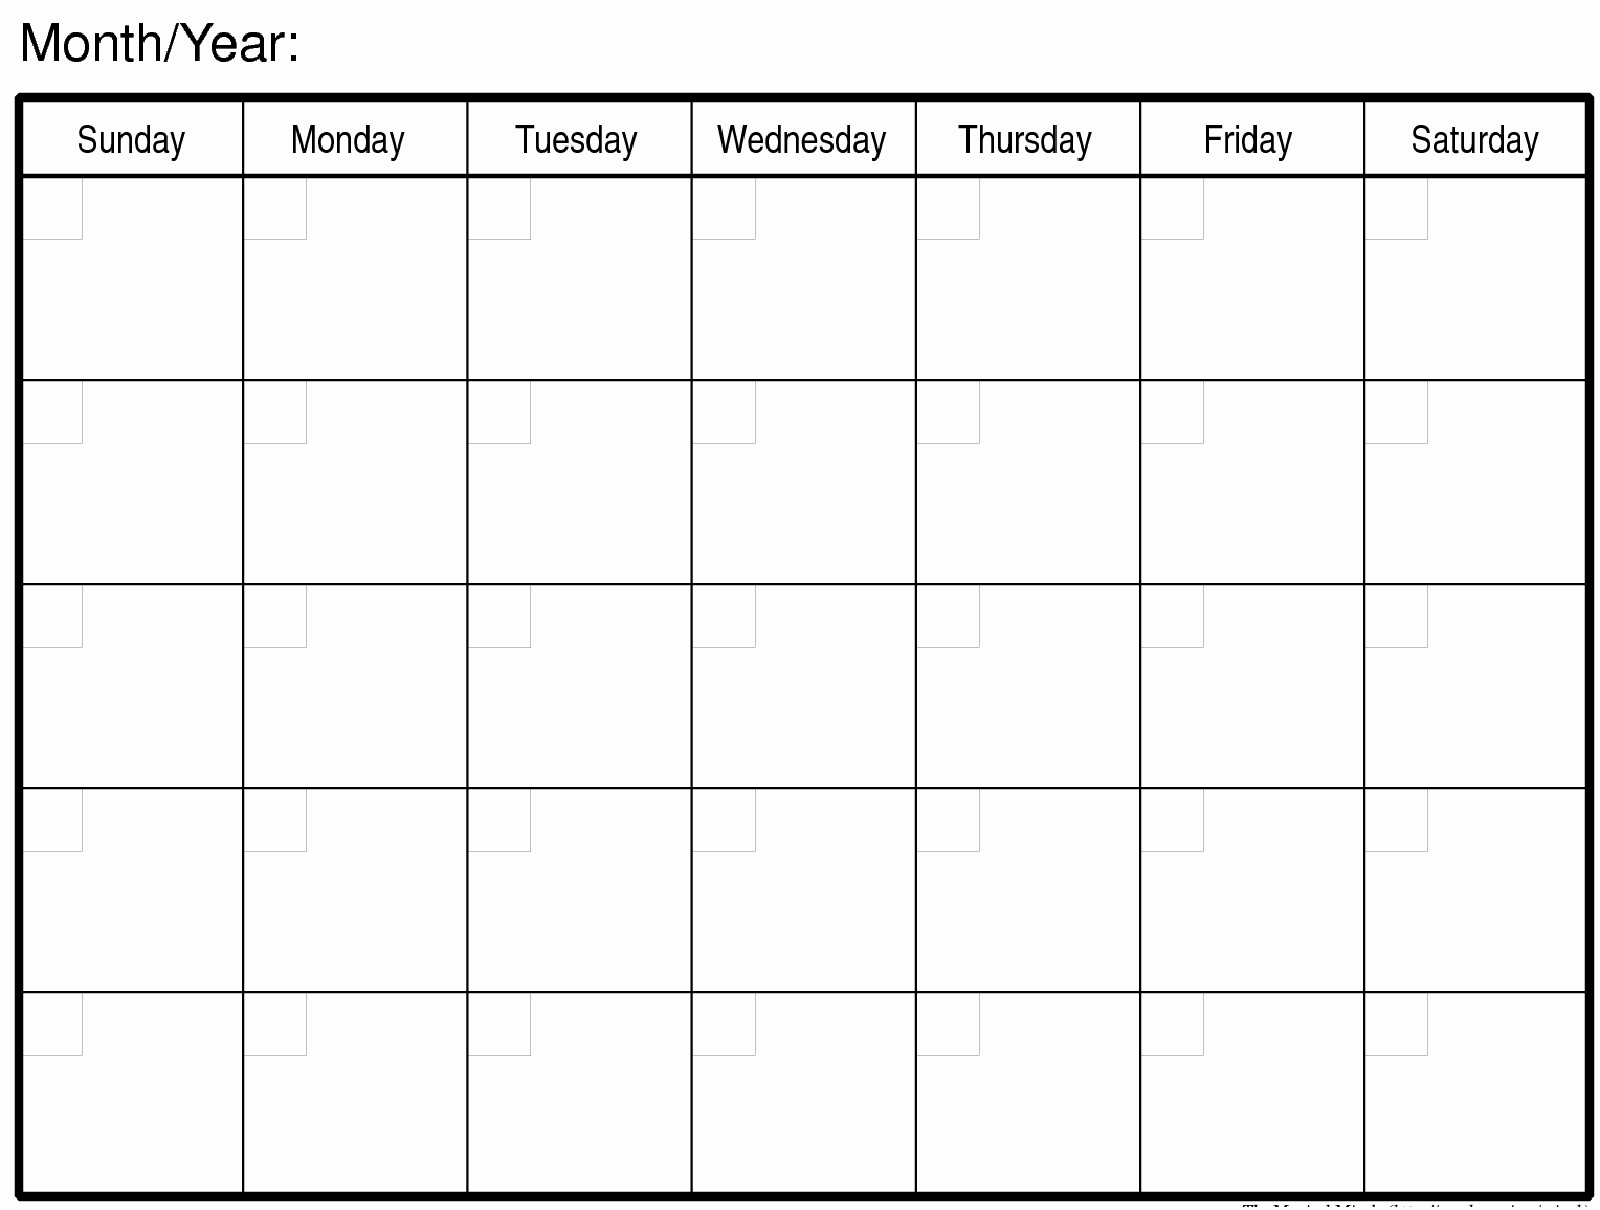 Blank Monthly Calendars To Print Free Calendar 2018 Printable regarding Printable Blank Monthly Calendar Template